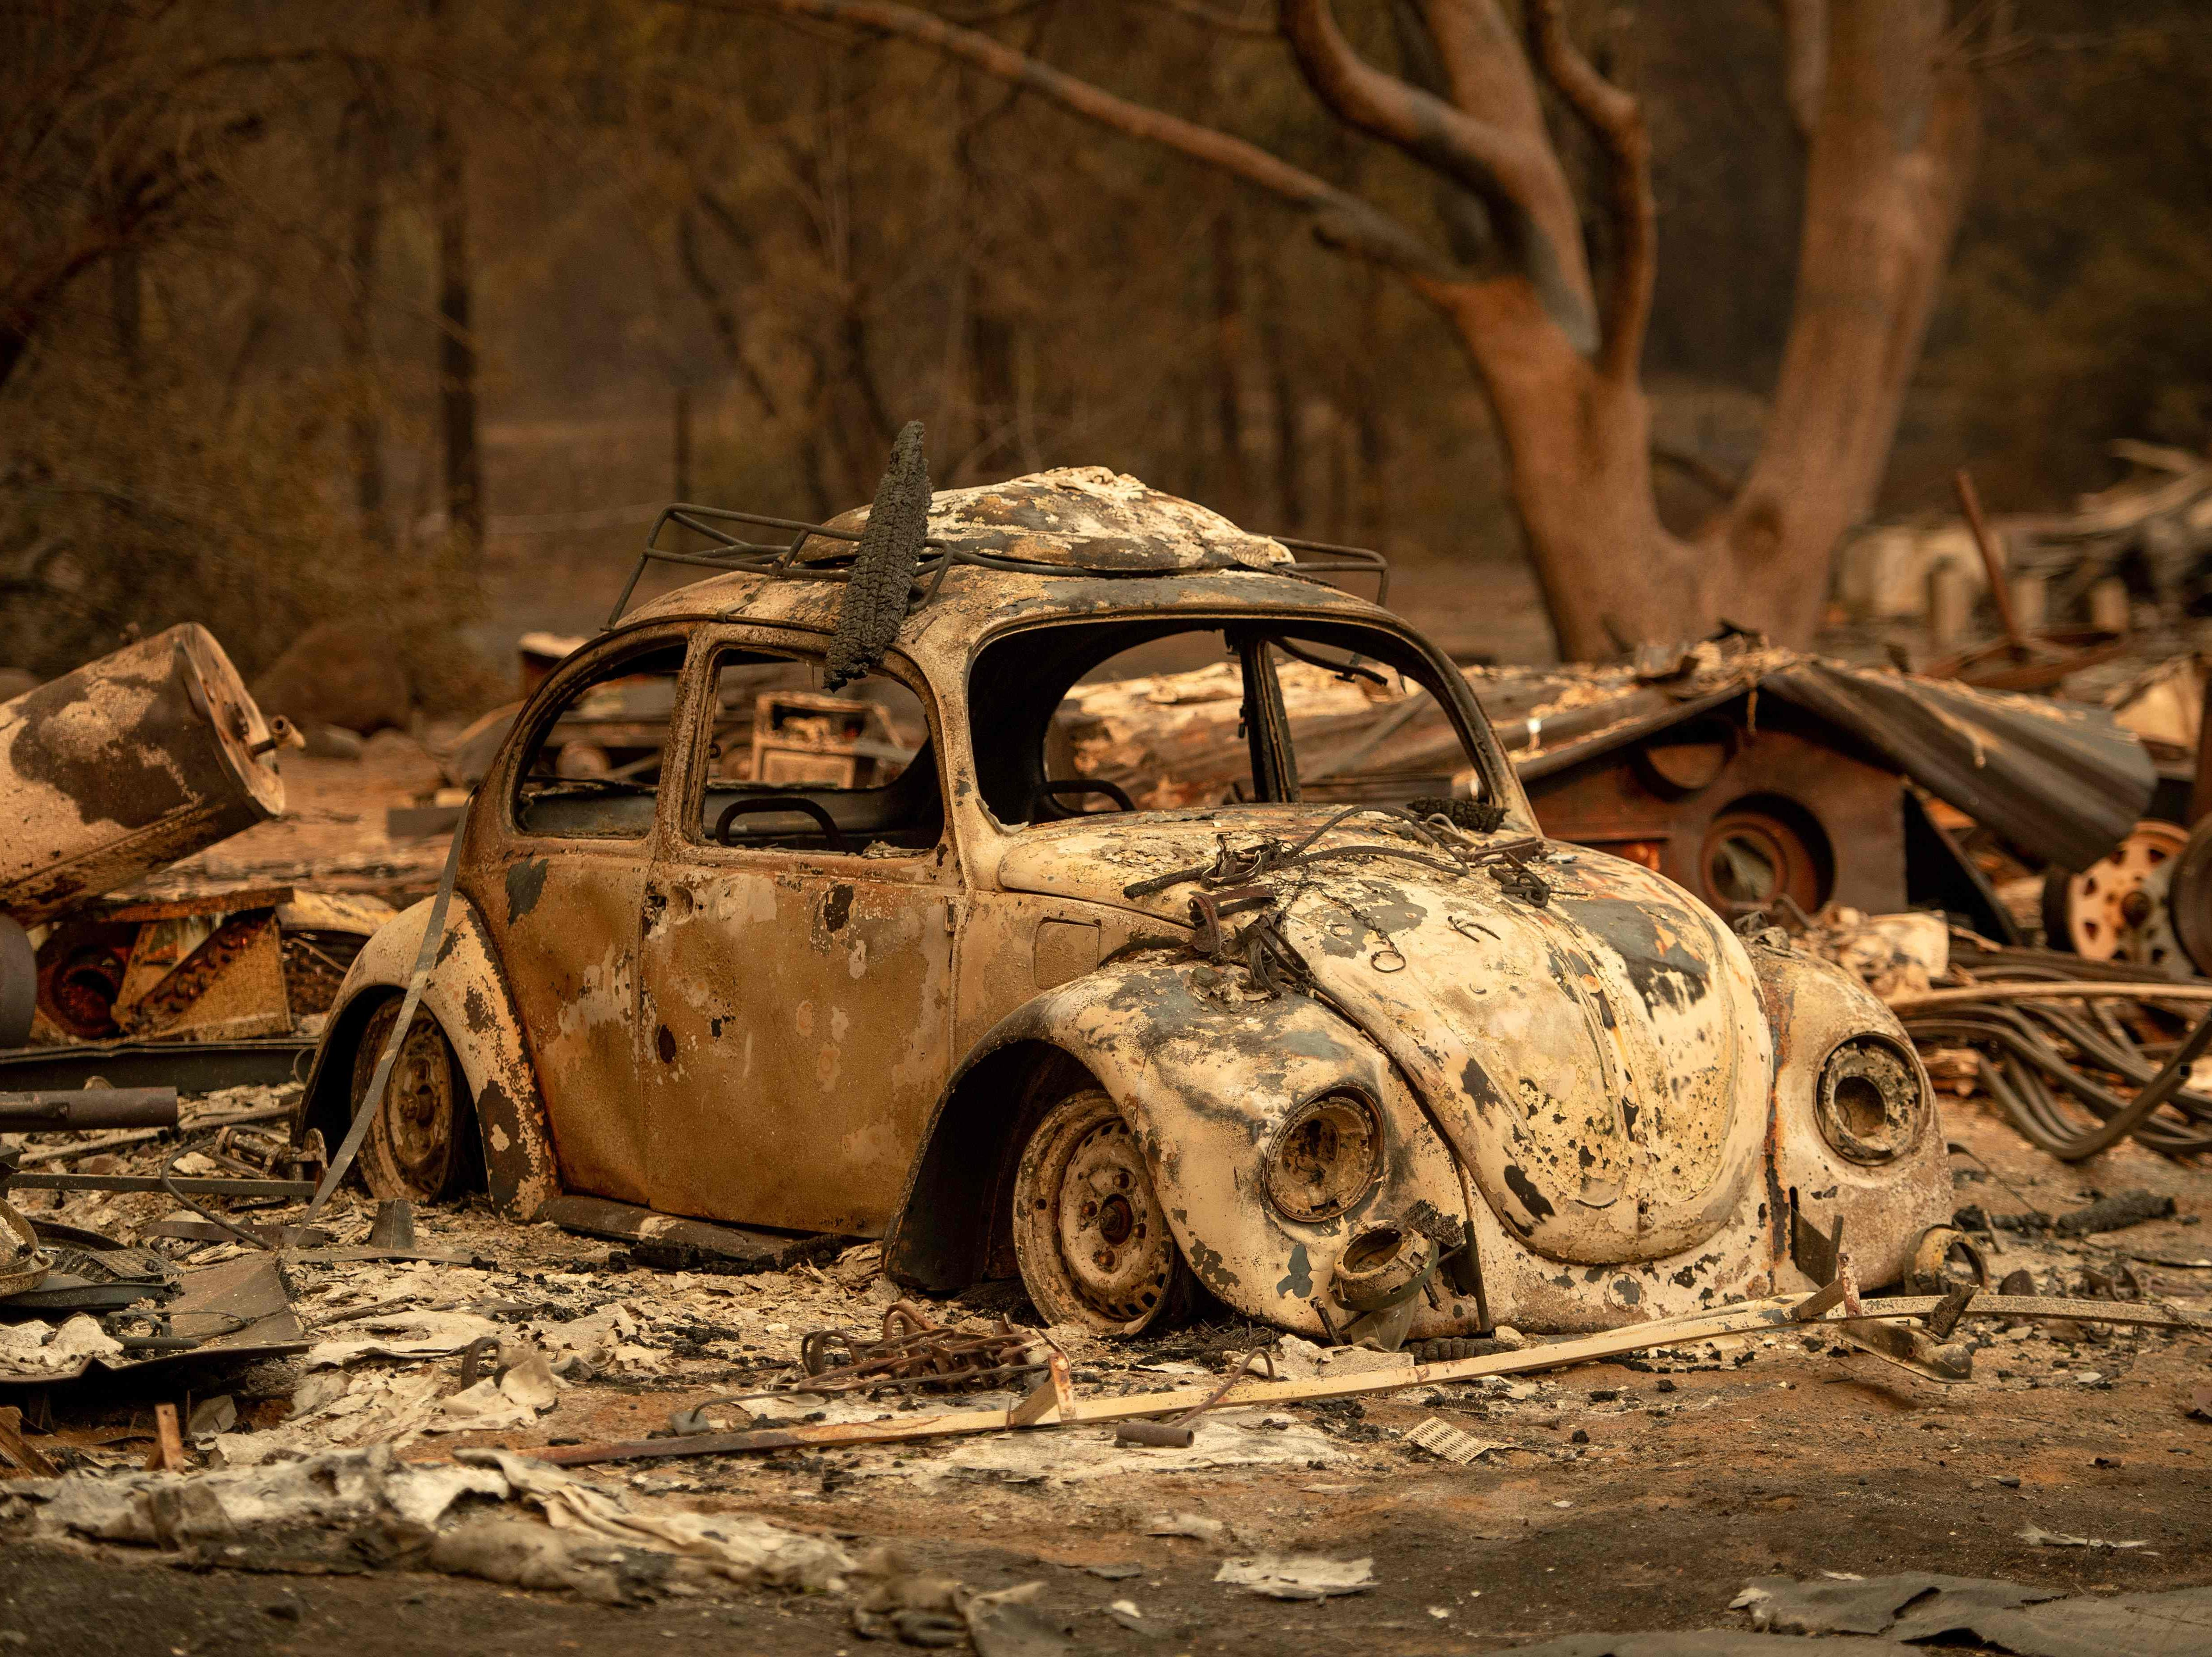 A burned out vehicle rests after the Delta Fire tore through a neighborhood in Lamoine, California in the Shasta Trinity National Forest on September 6, 2018.